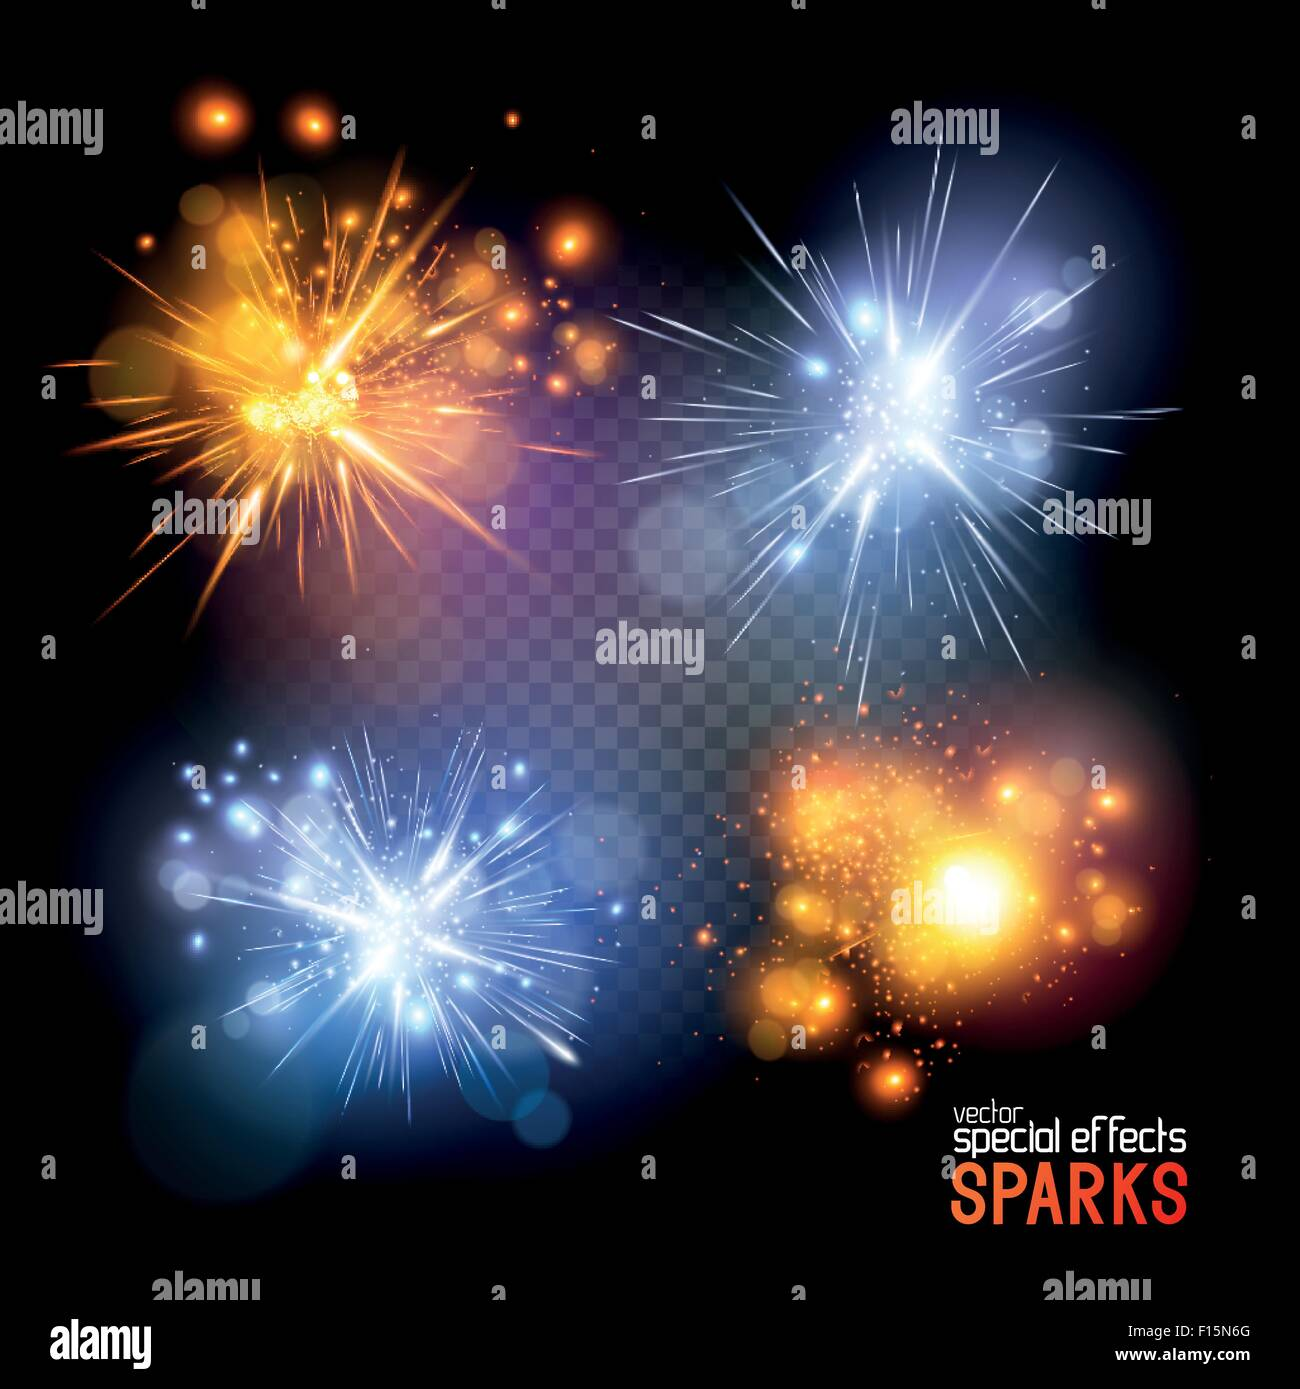 Vector Sparks. A set of vector electrical and fire sparks. Vector illustration. - Stock Image